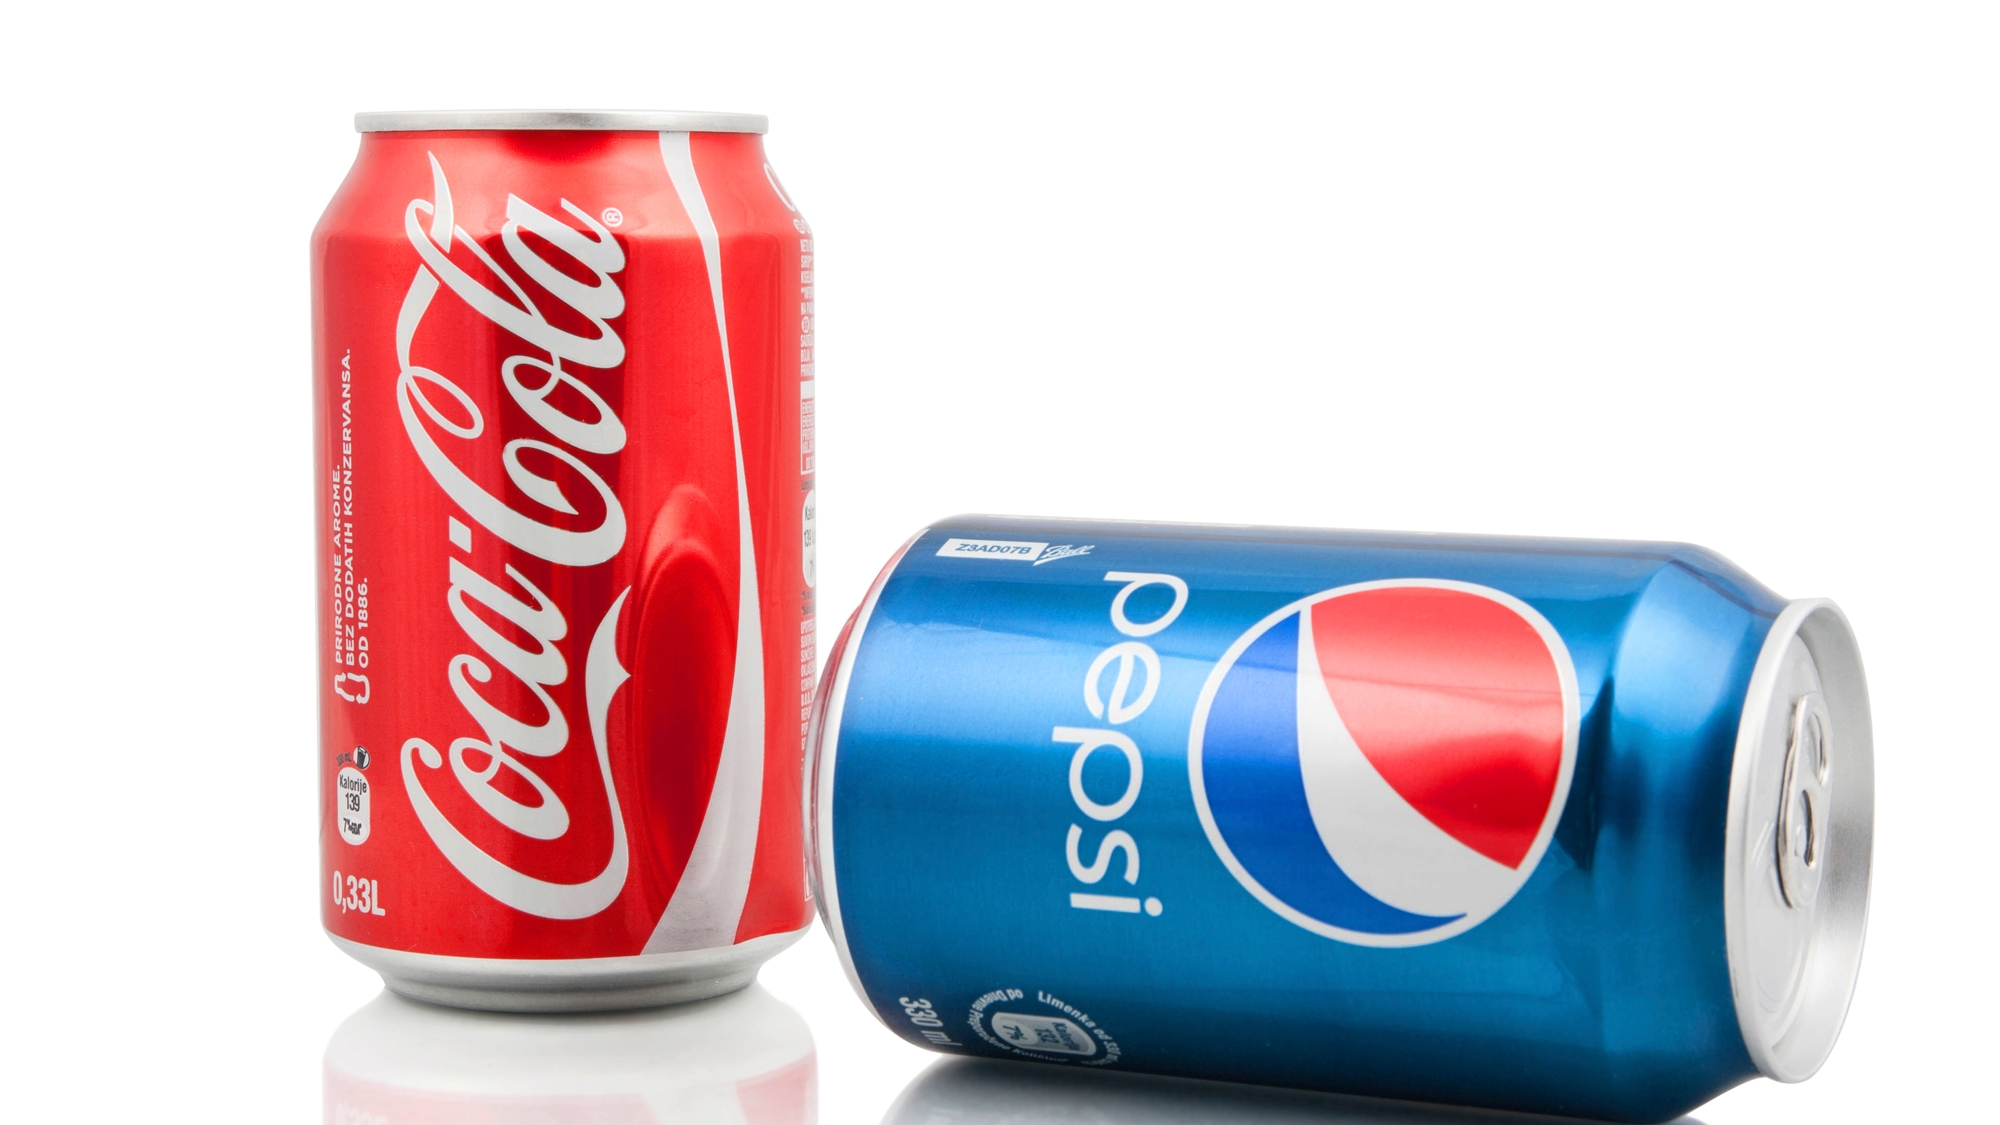 statement of the problem of coke and pepsi